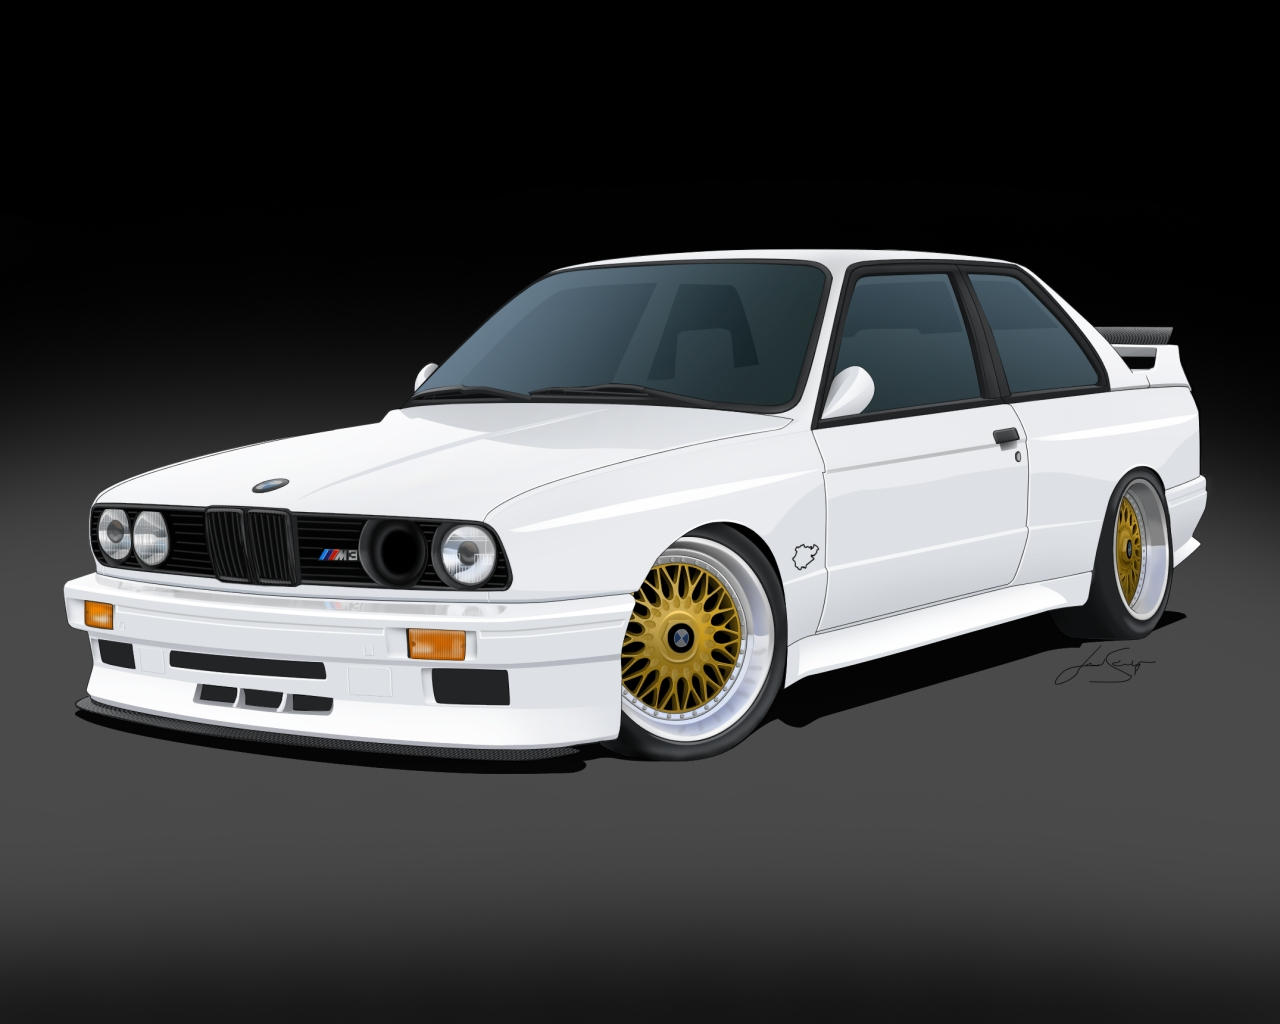 Bmw M3 E30 Toon By LindStyling On DeviantArt